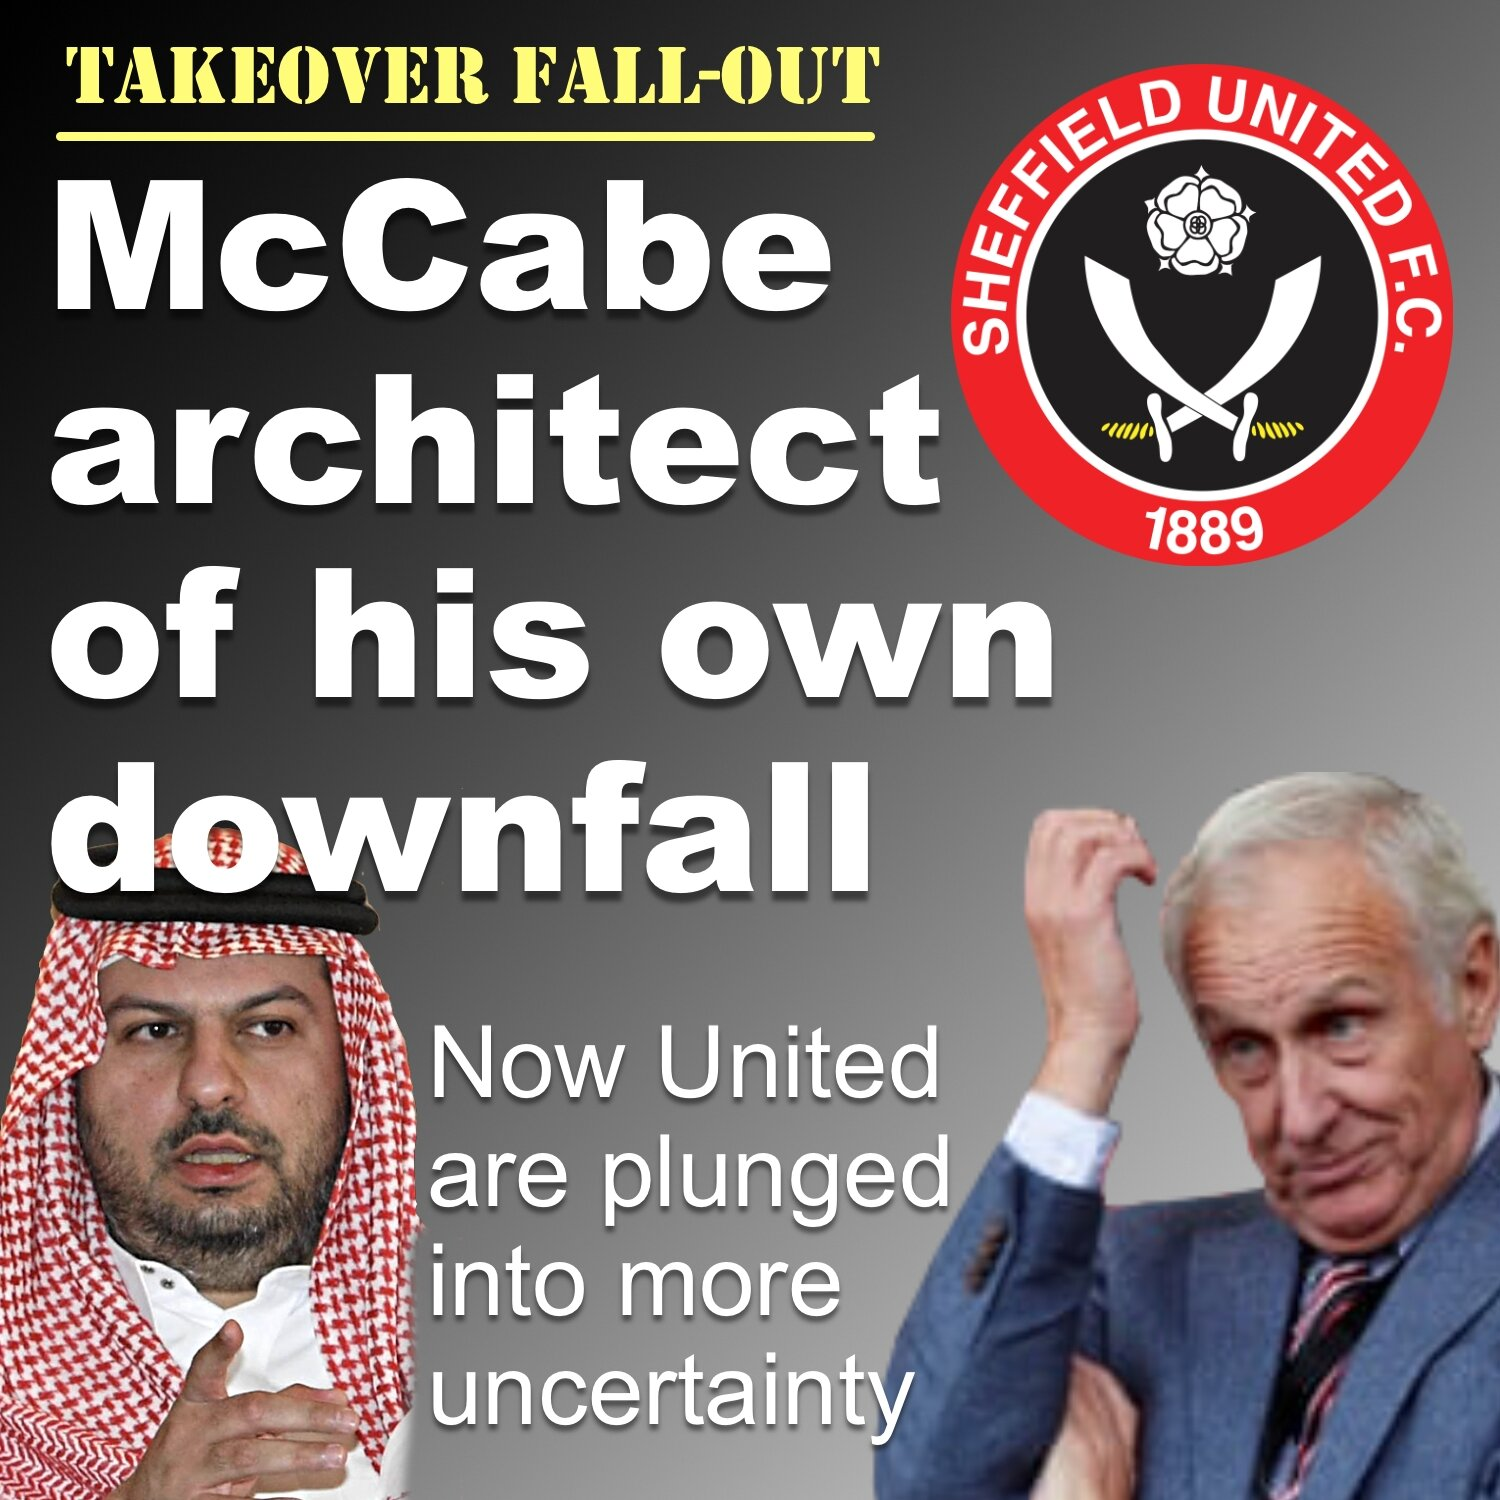 Kevin McCabe architect of his own downfall at Sheffield United.